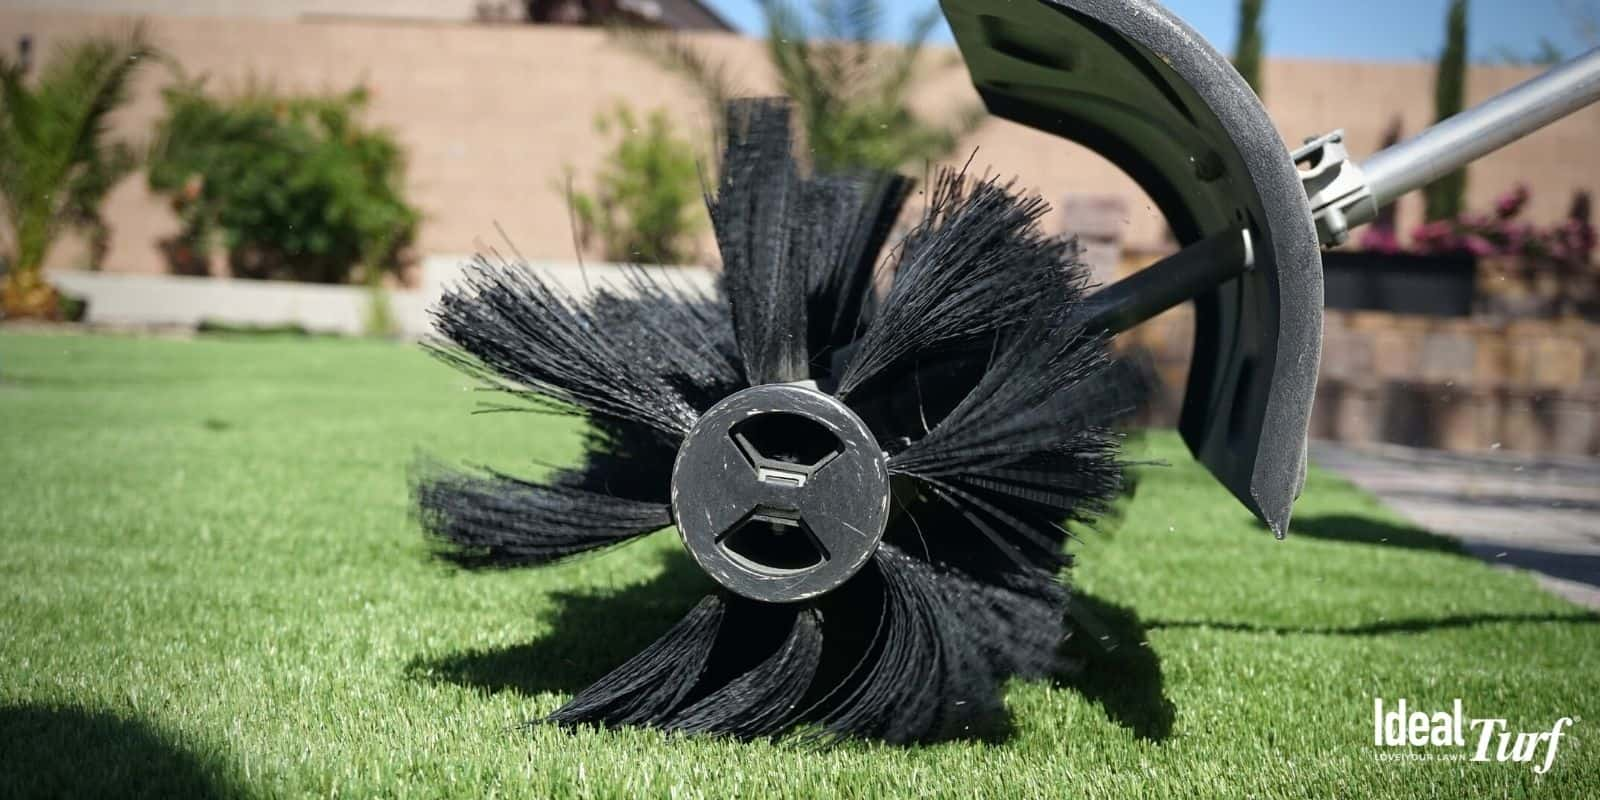 Artificial grass being fluffed with a power broom